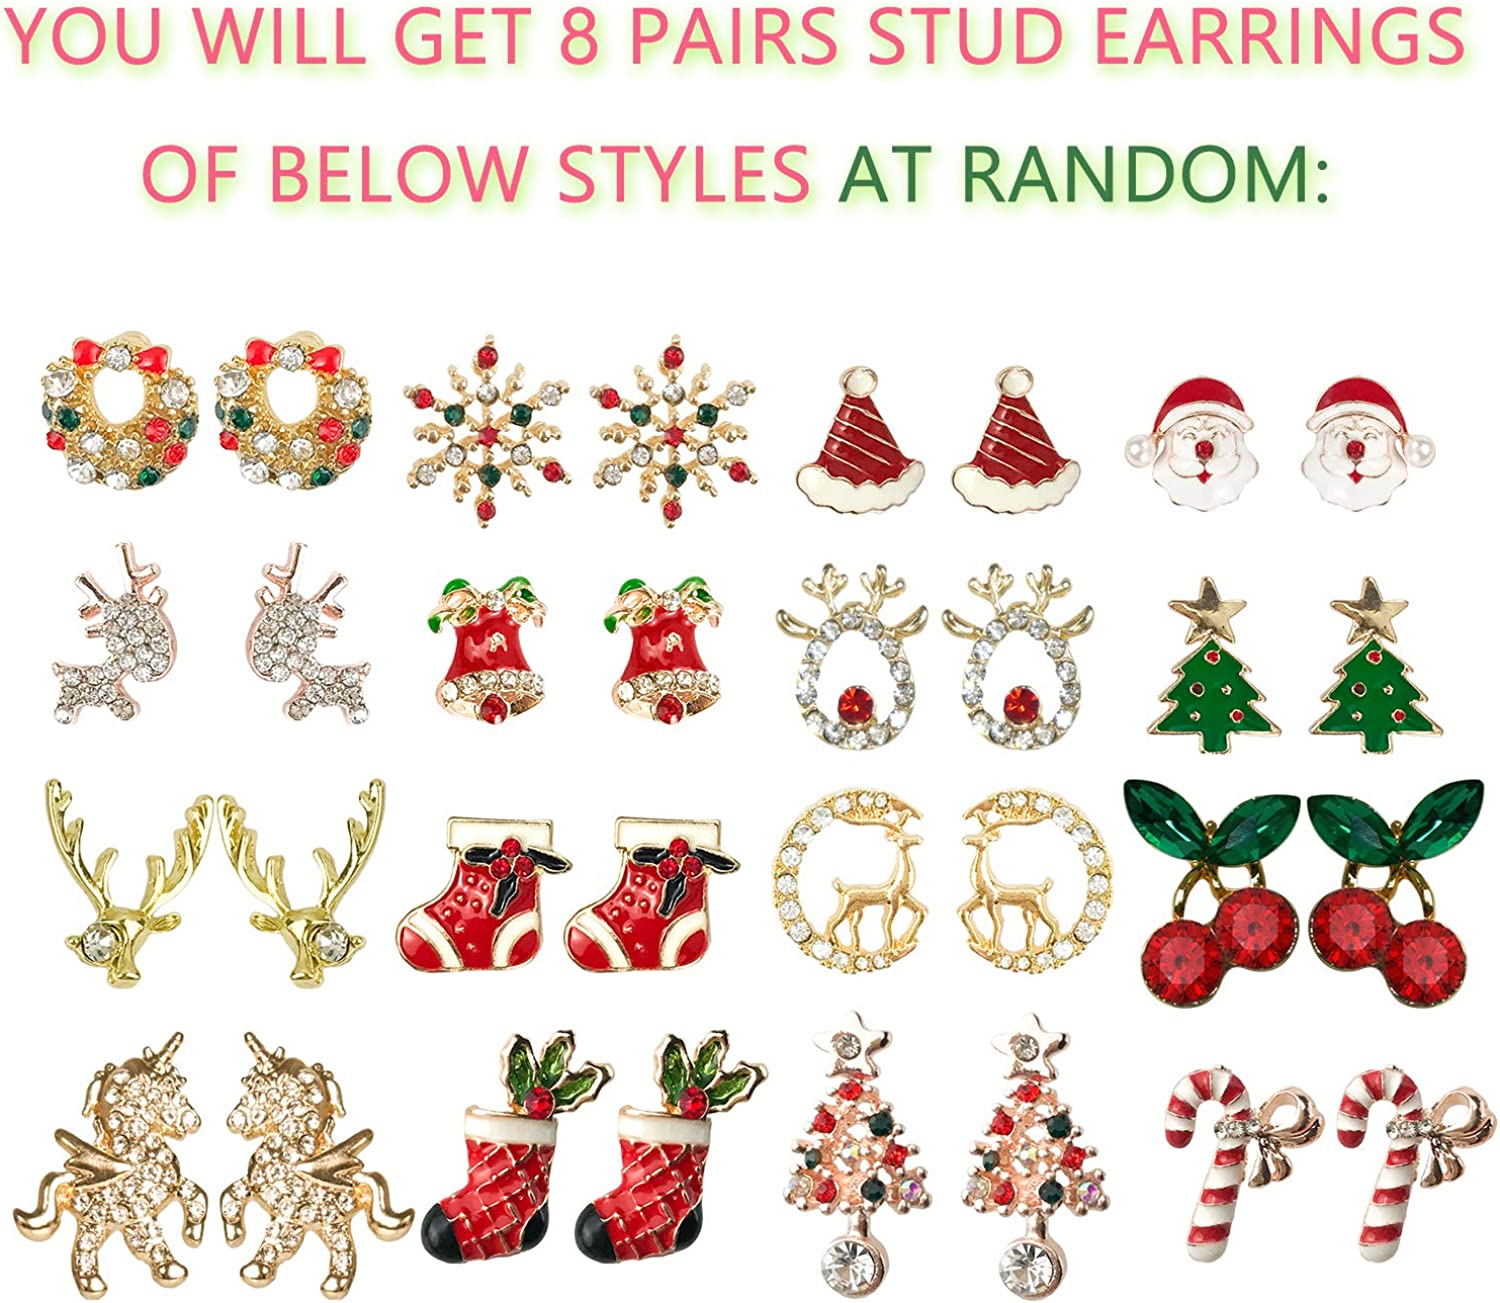 Holiday Party Jewelry Accessories TEZCRT pack of 8 Christmas Themed Stud Earring kit with Delicate Designed Packages Cute Festive Stud Earrings Pack for Teens Girls Women